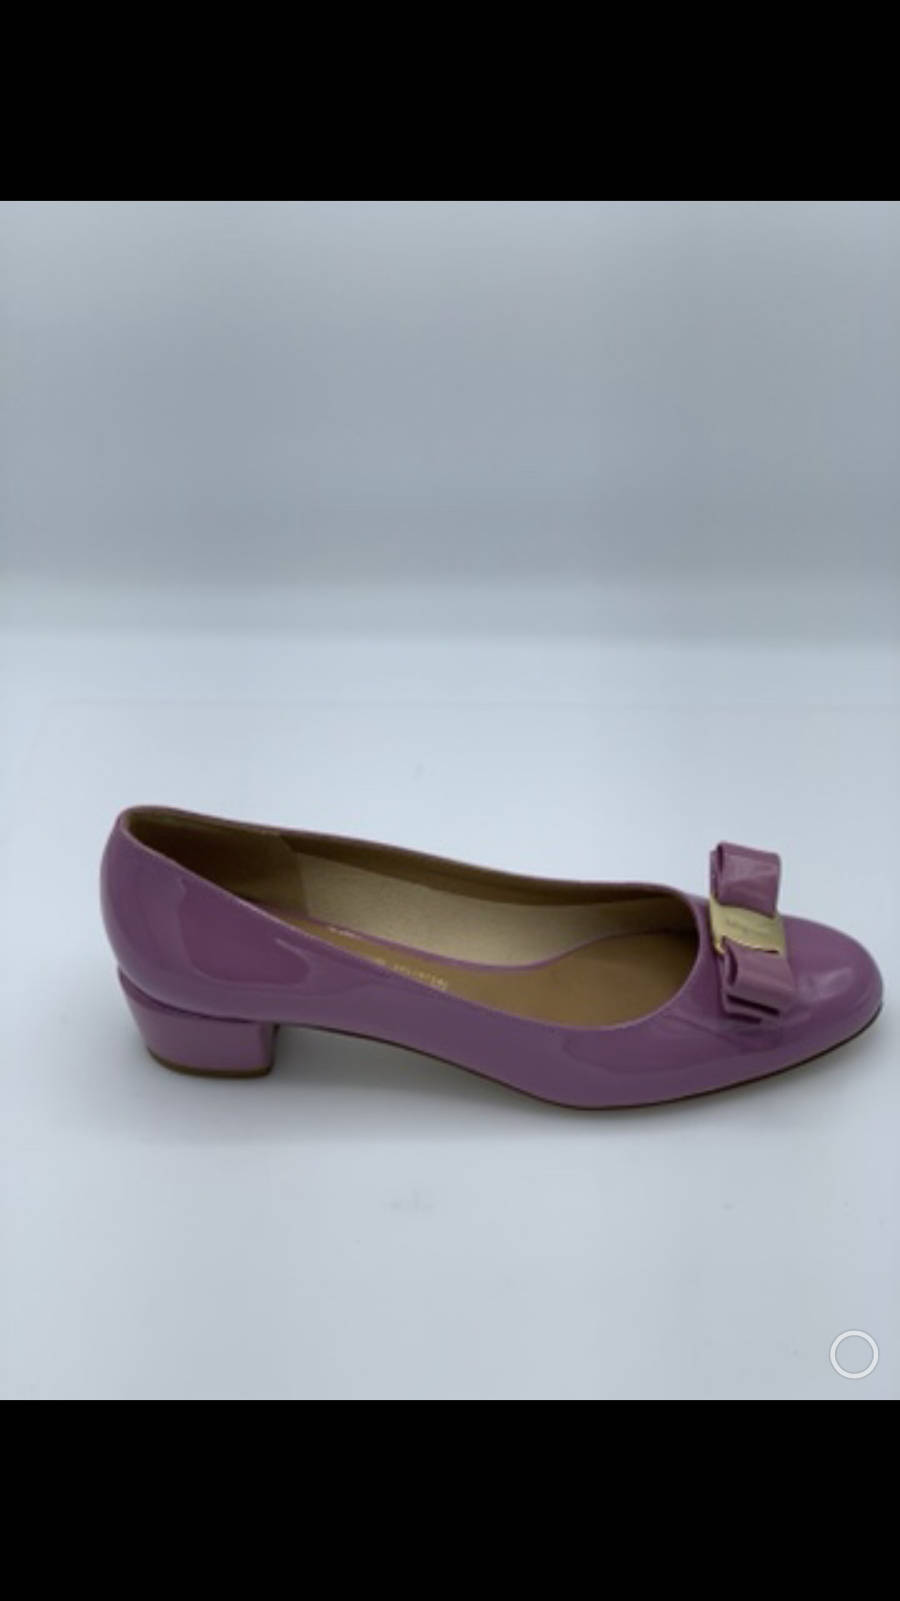 Salvatore-Ferragamo-Shoe-10-Pump-Patent-Leather-Bow-Lavender-New-Gold-Hardware_12611B.jpg